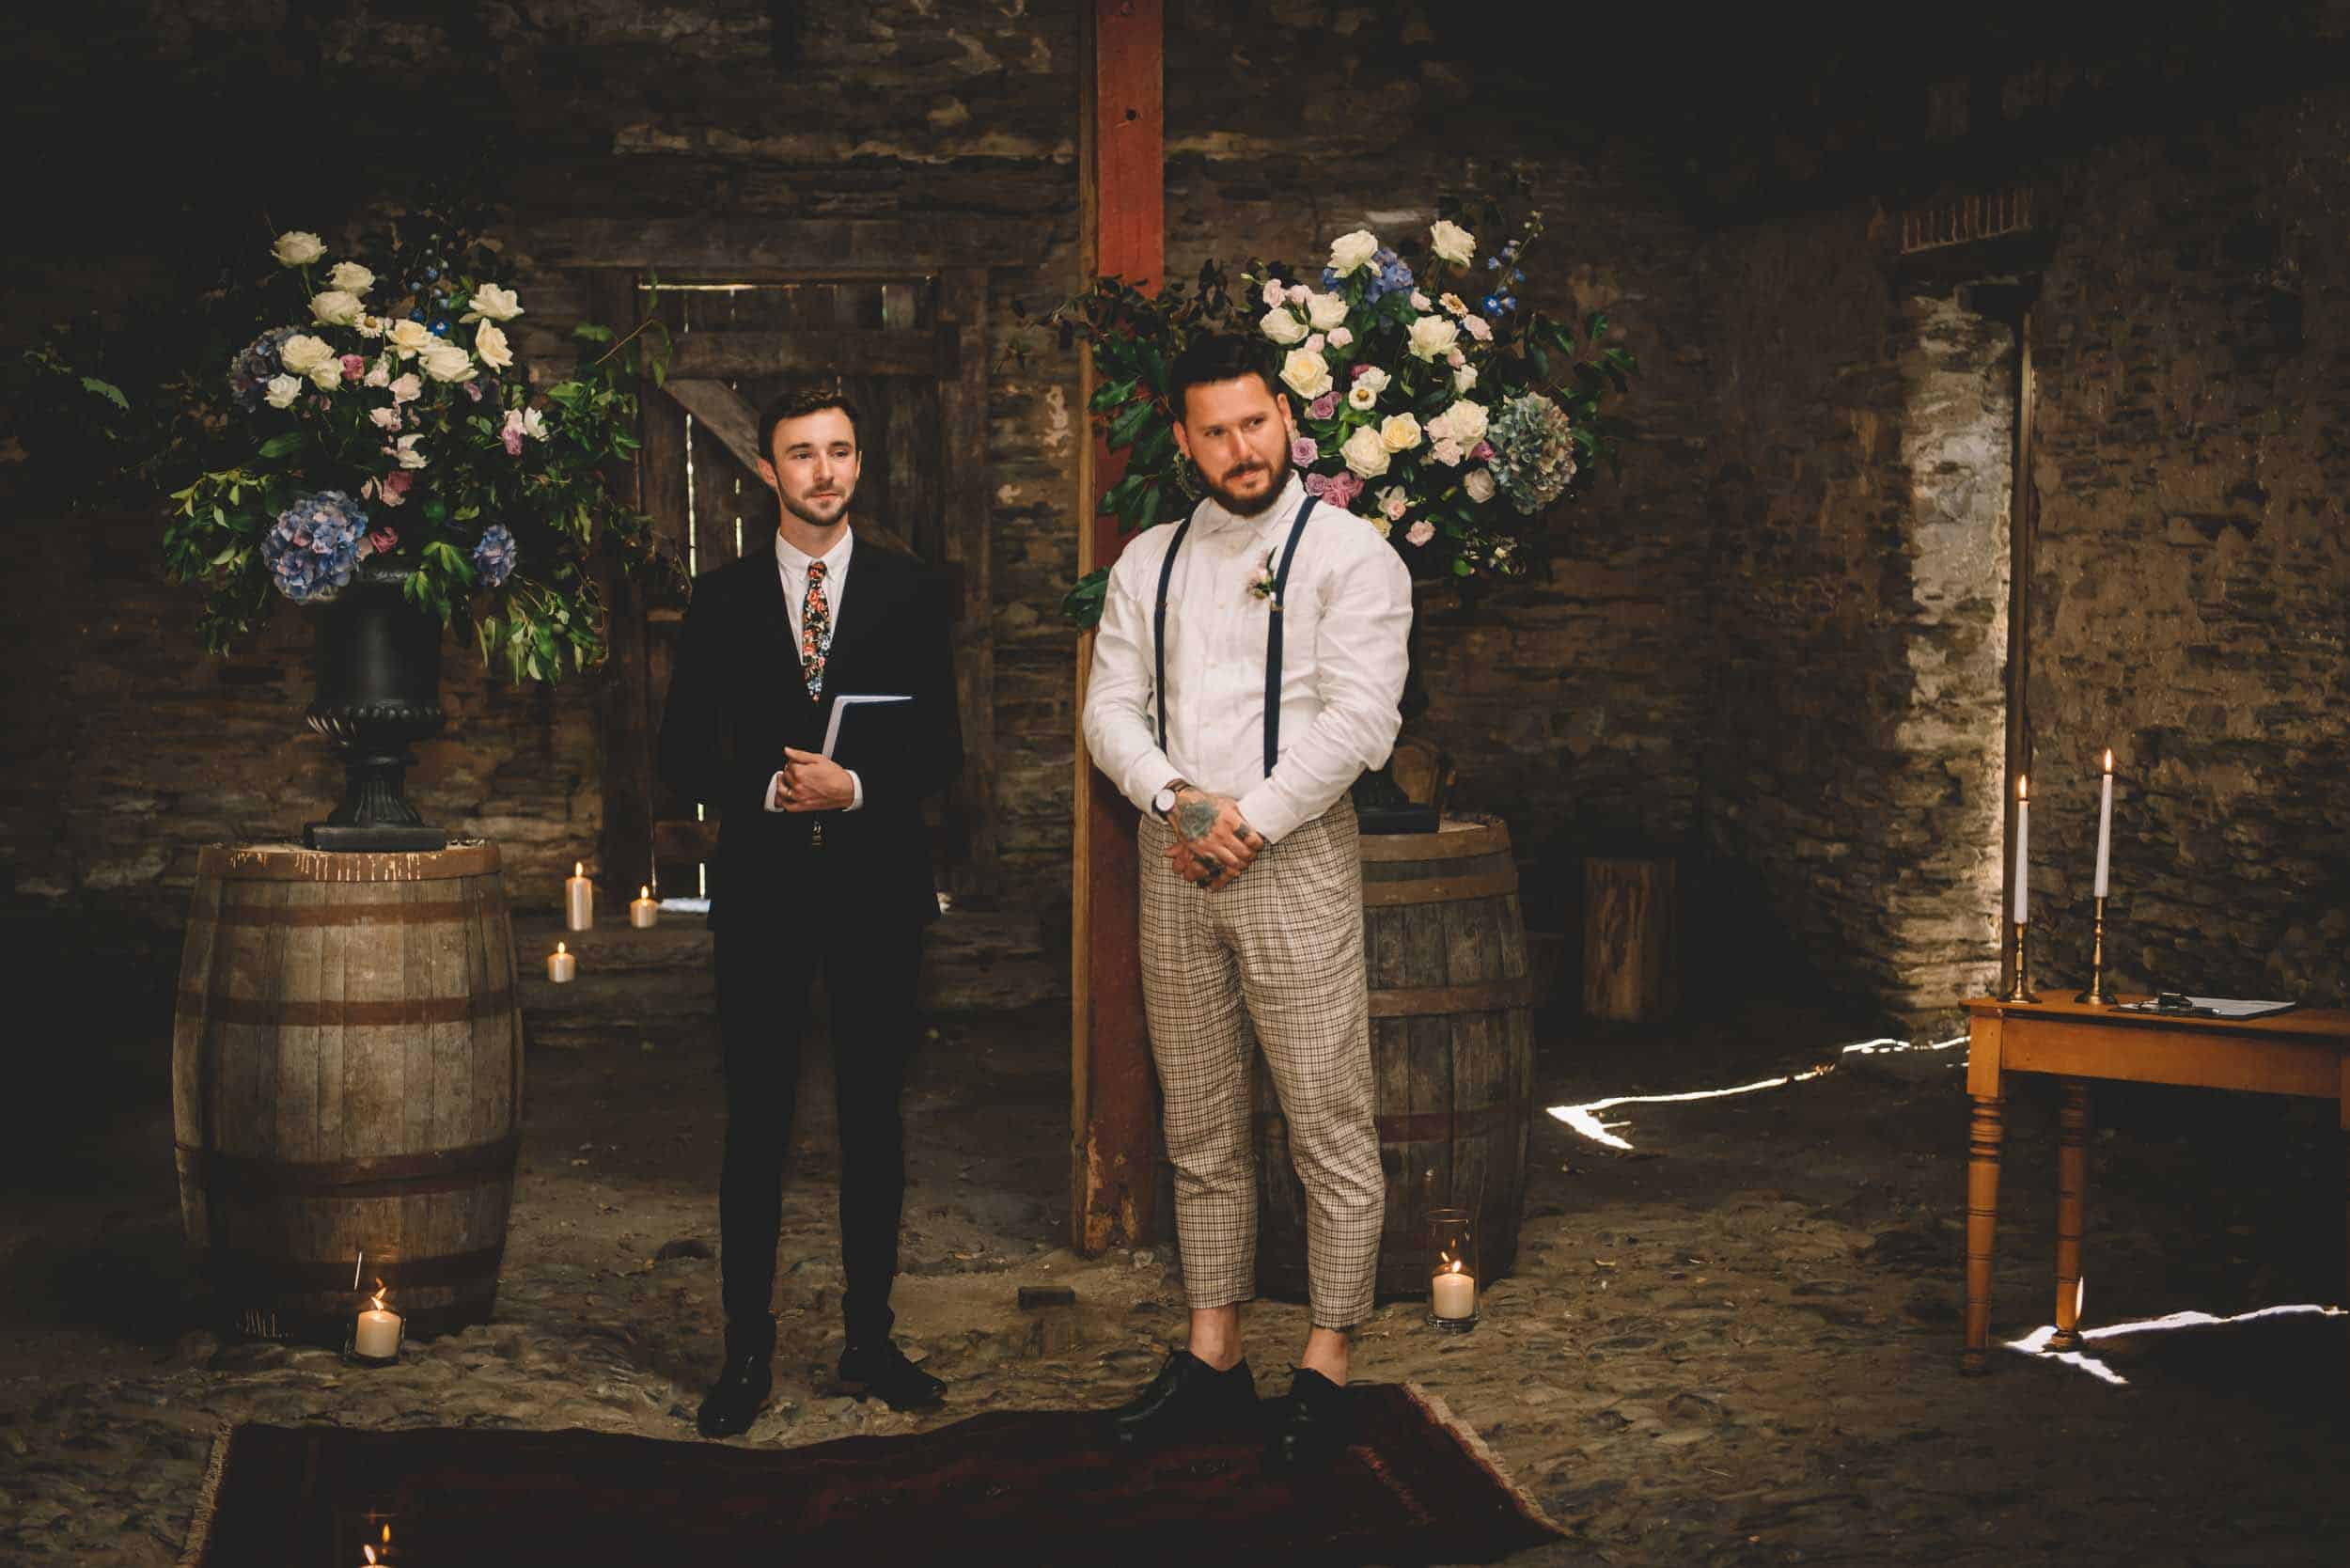 Nick & Nina's Thurlby Domain Elopement old stone stables wedding ceremony nervous groom waiting